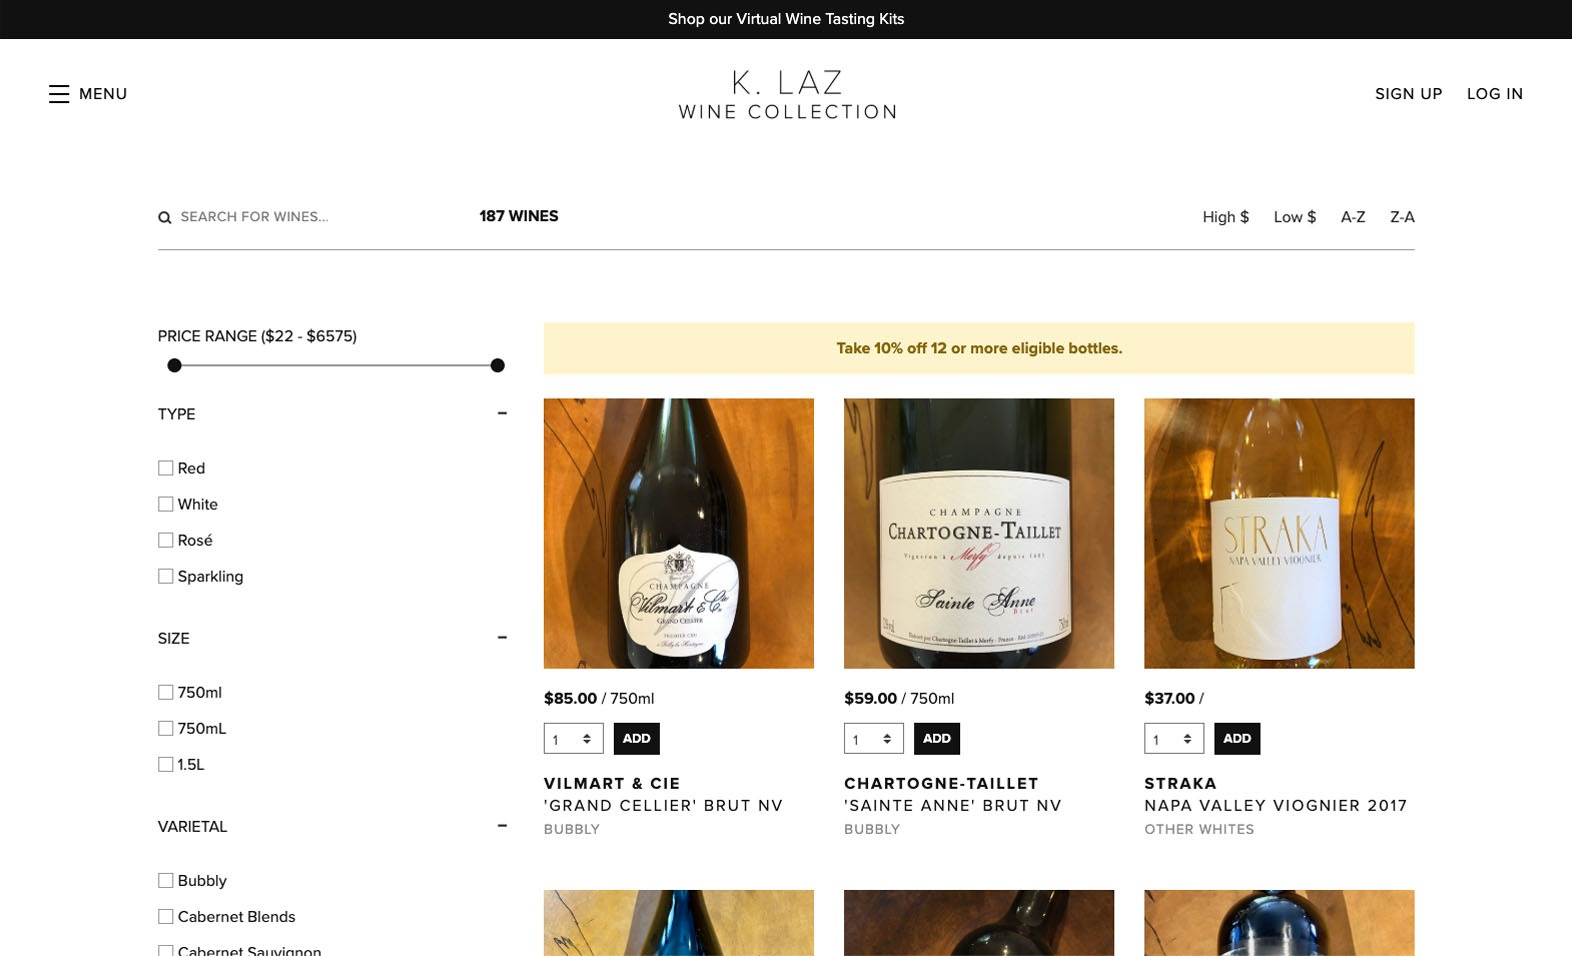 K. Laz Wine Collection Website